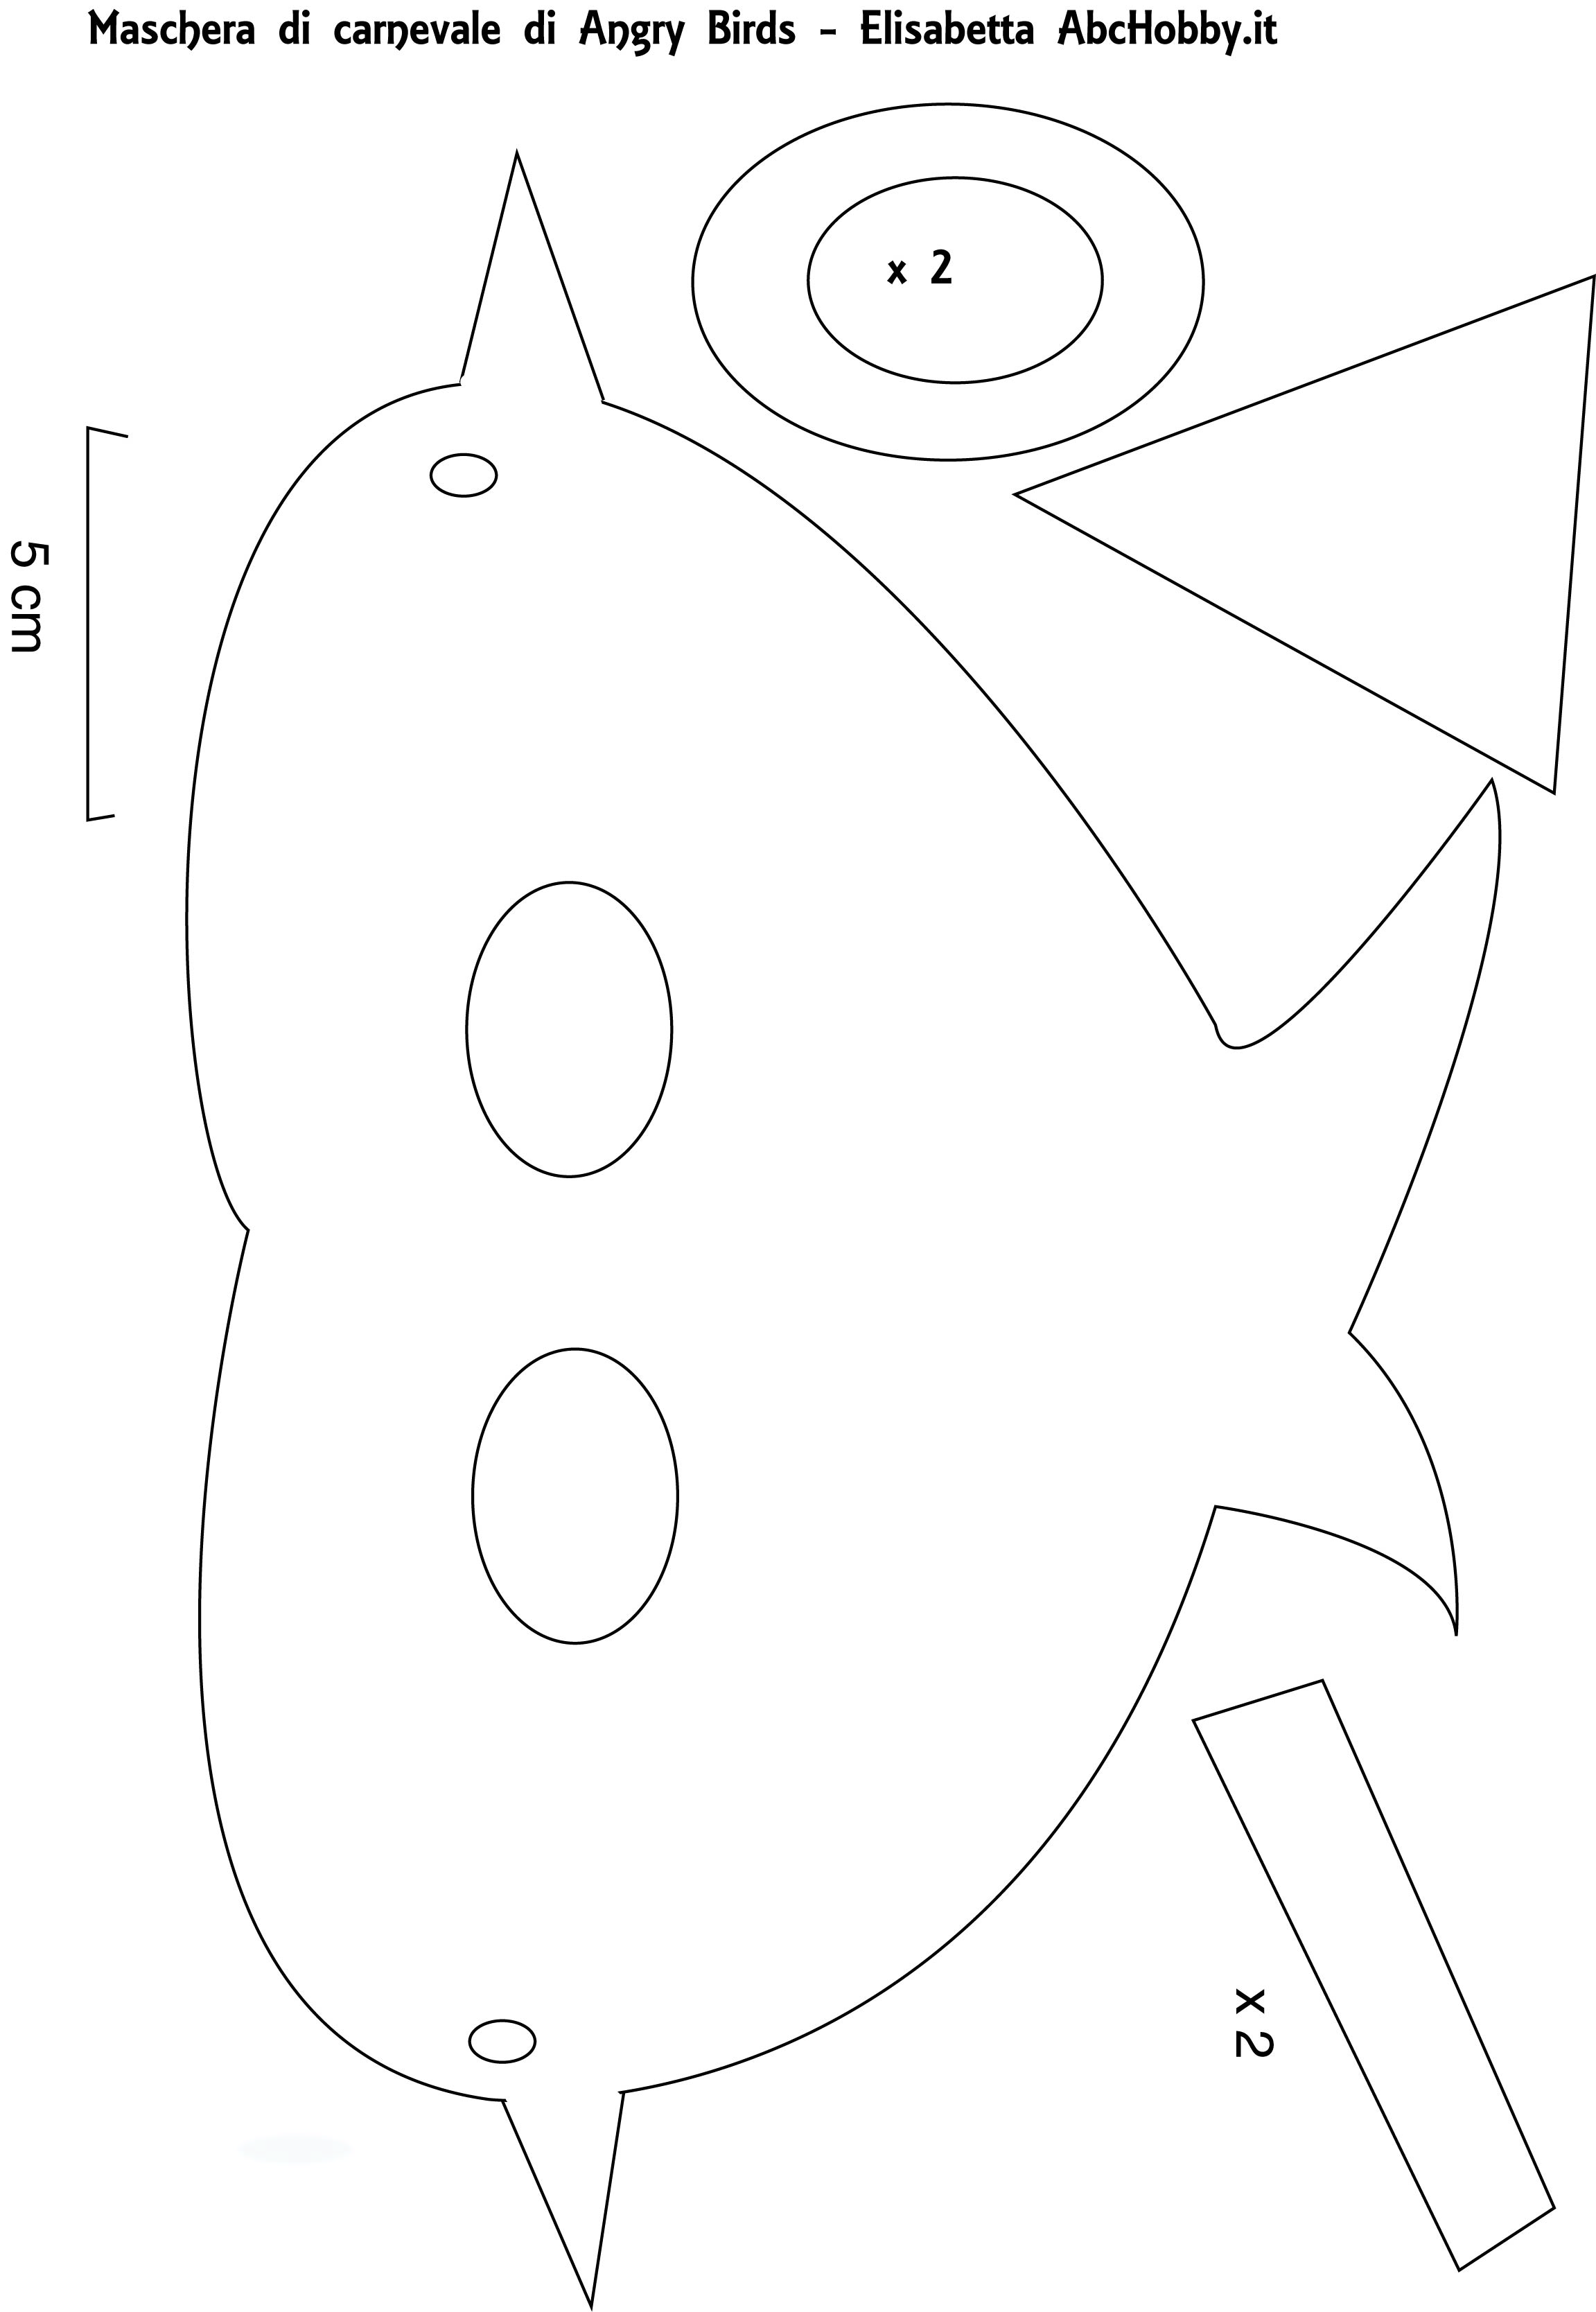 Uncategorized Parrot Mask Template angry bird mask template photo8